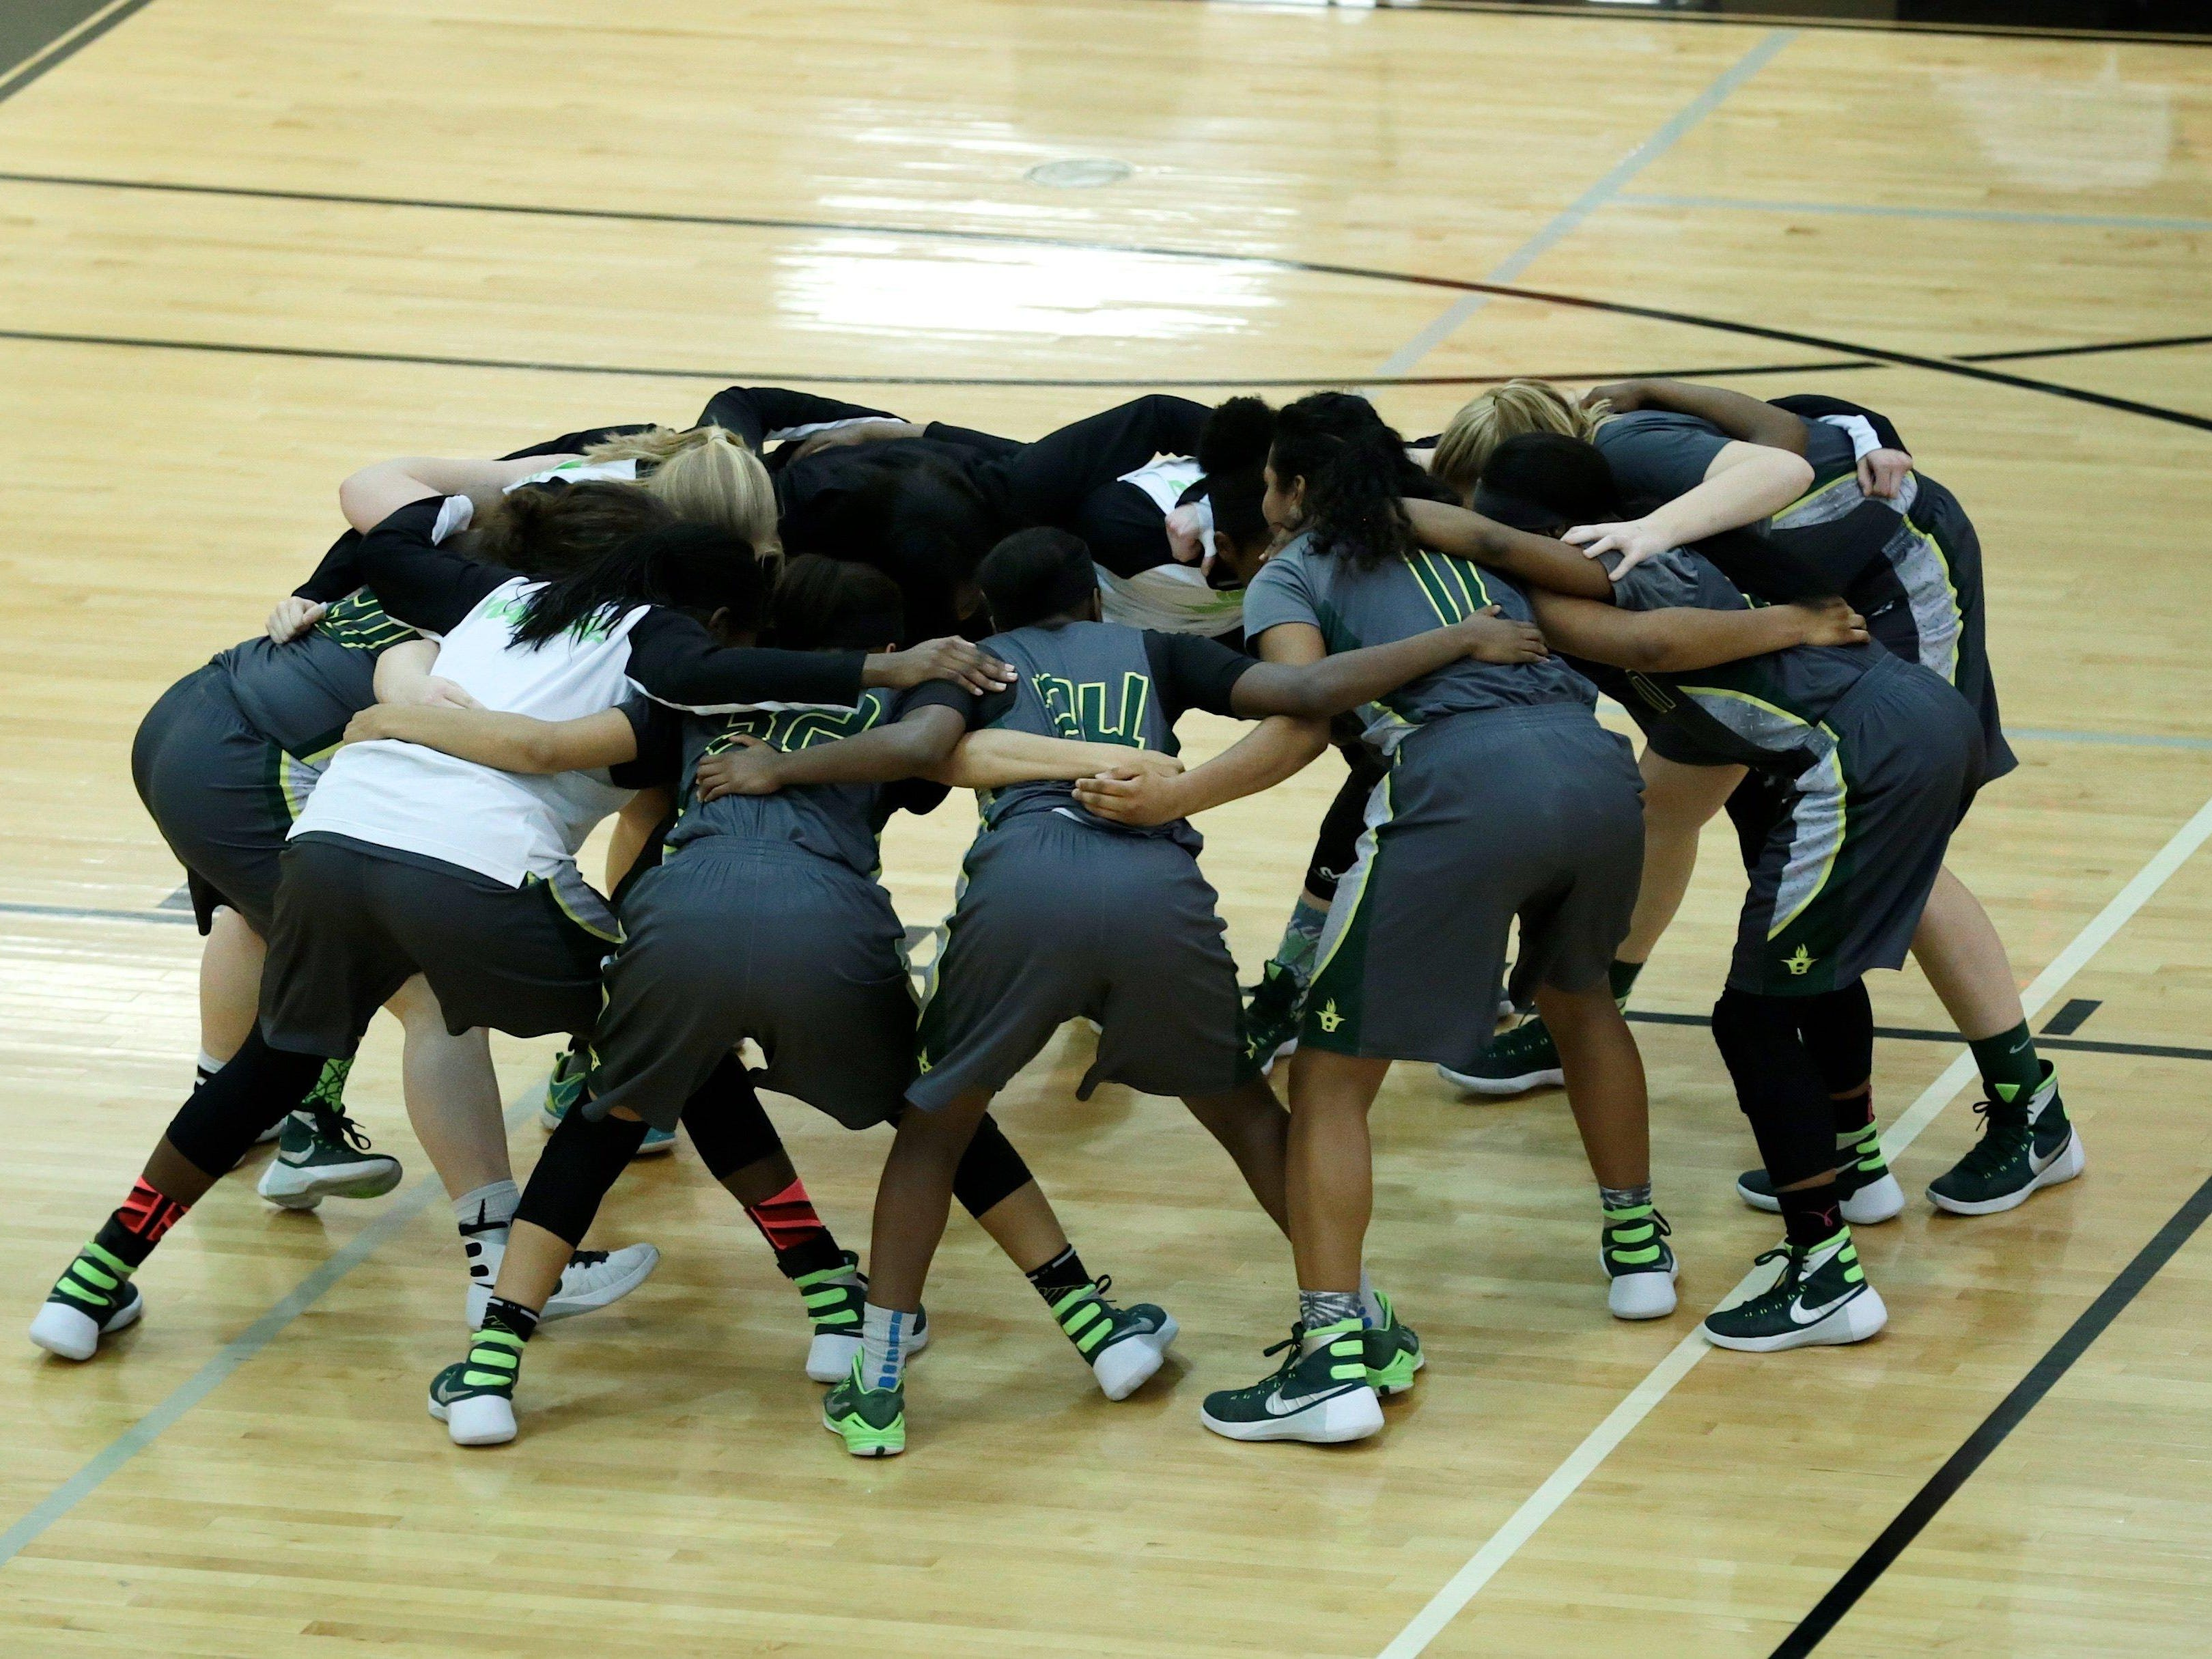 Ann Arbor Huron's girls team, ranked No. 4, has advanced in Class A and will meet No. 6 Detroit King in a 5 p.m. Tuesday quarterfinal game at Southfield.